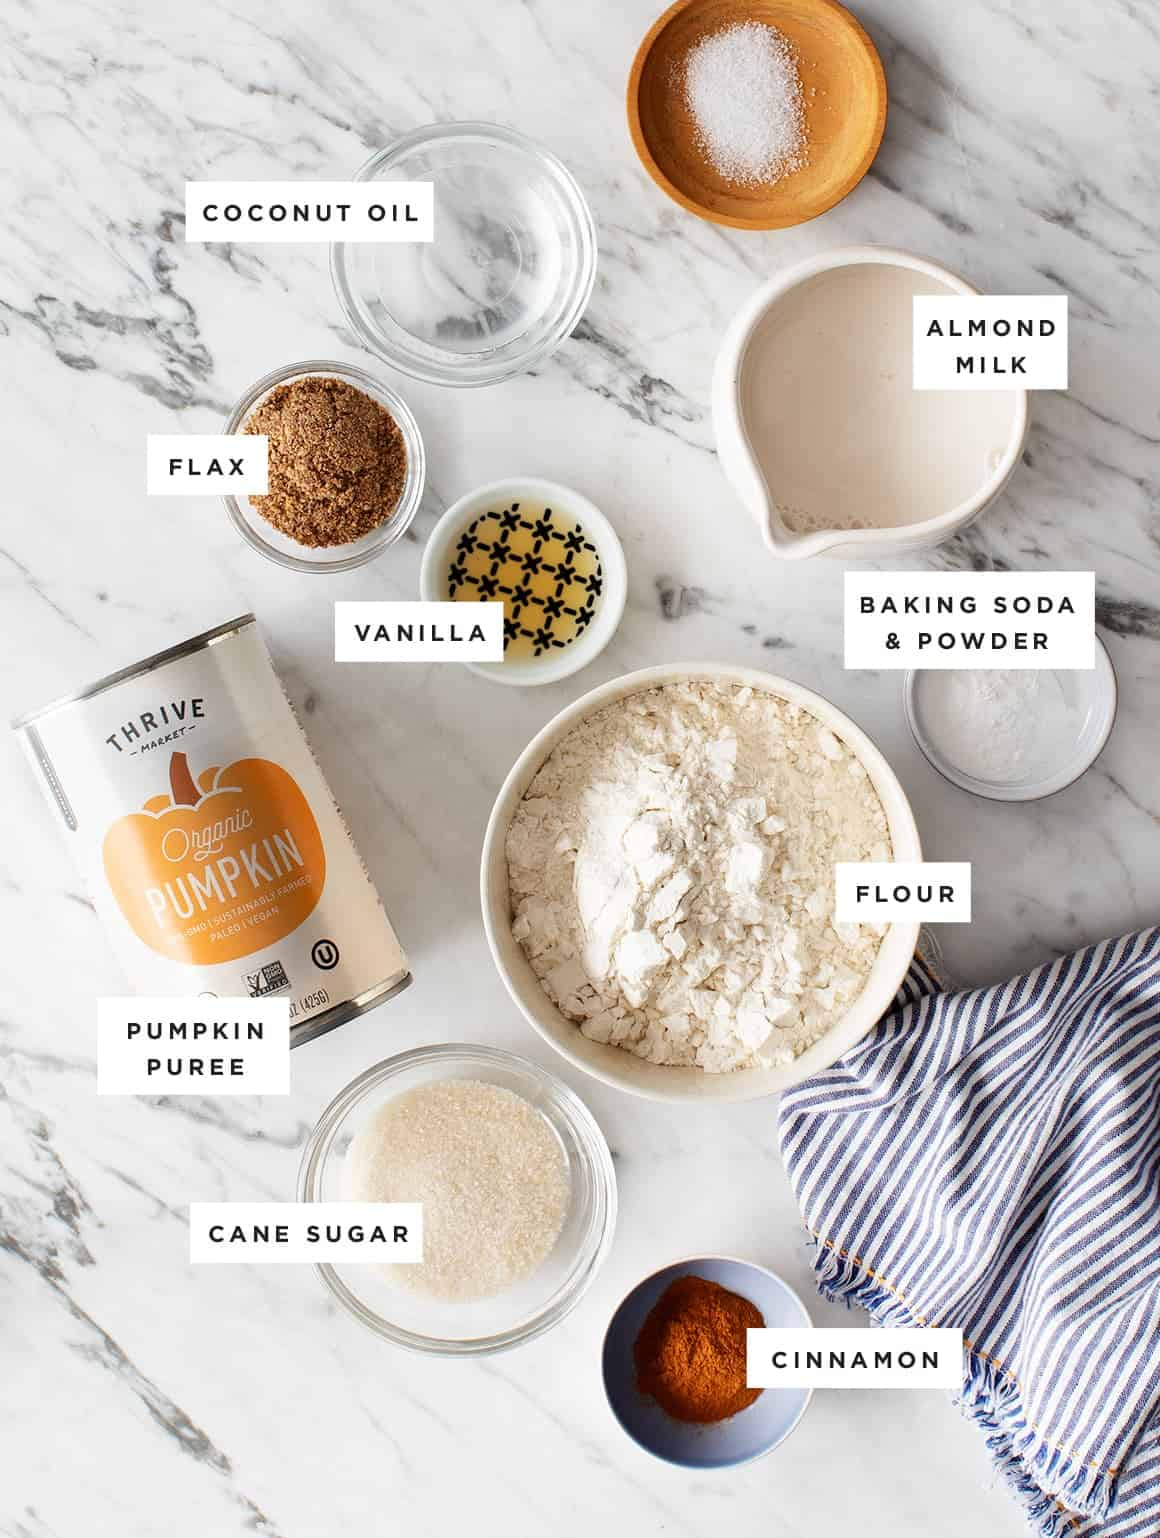 Pumpkin Pancake Recipe Ingredients